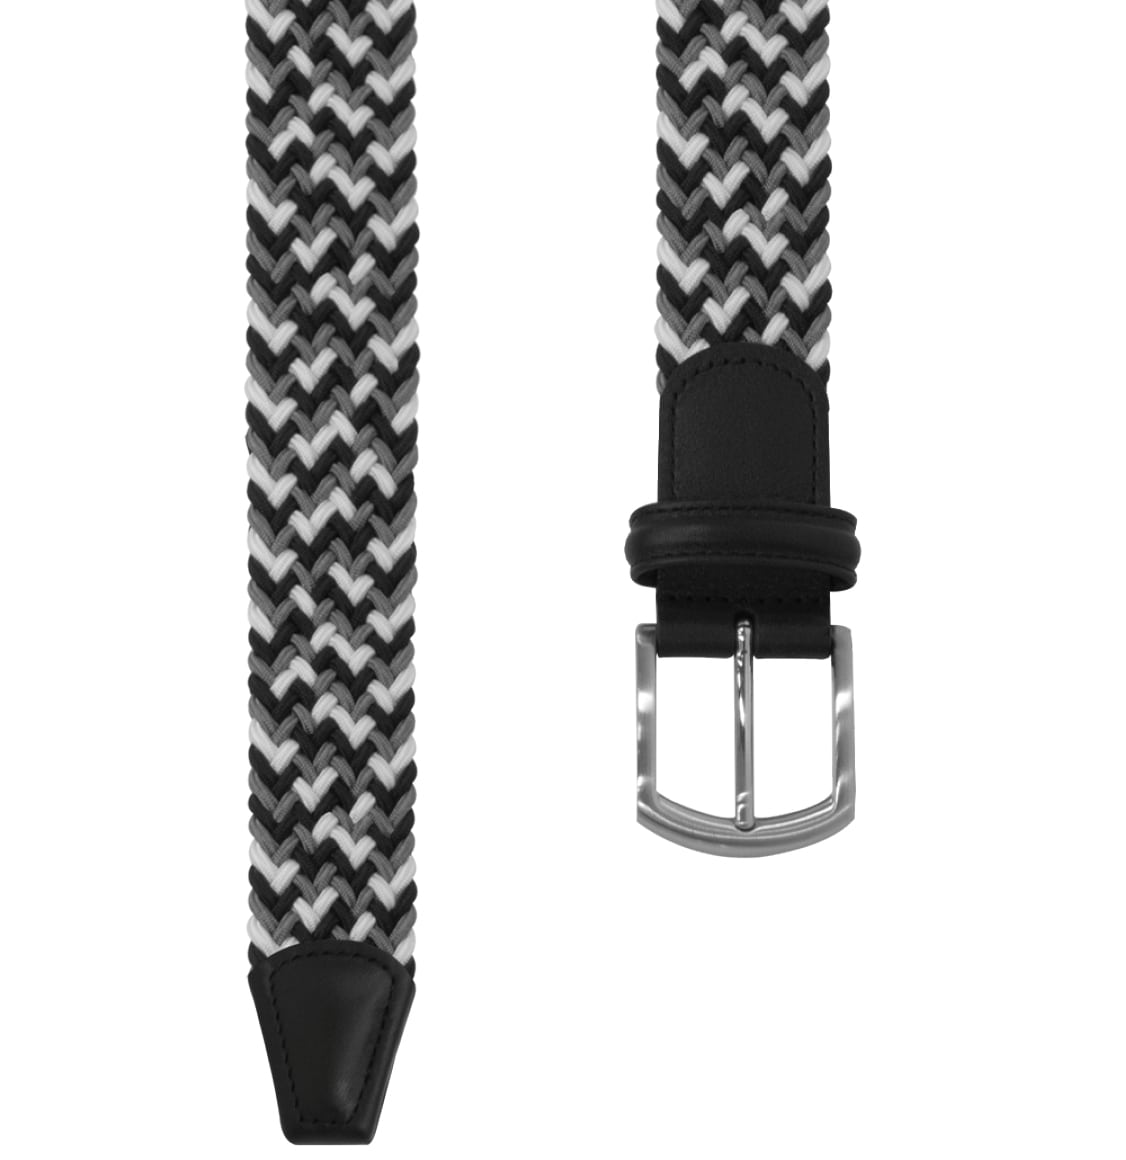 Anderson's Leather-Trimmed Multi Woven Belt Black and White